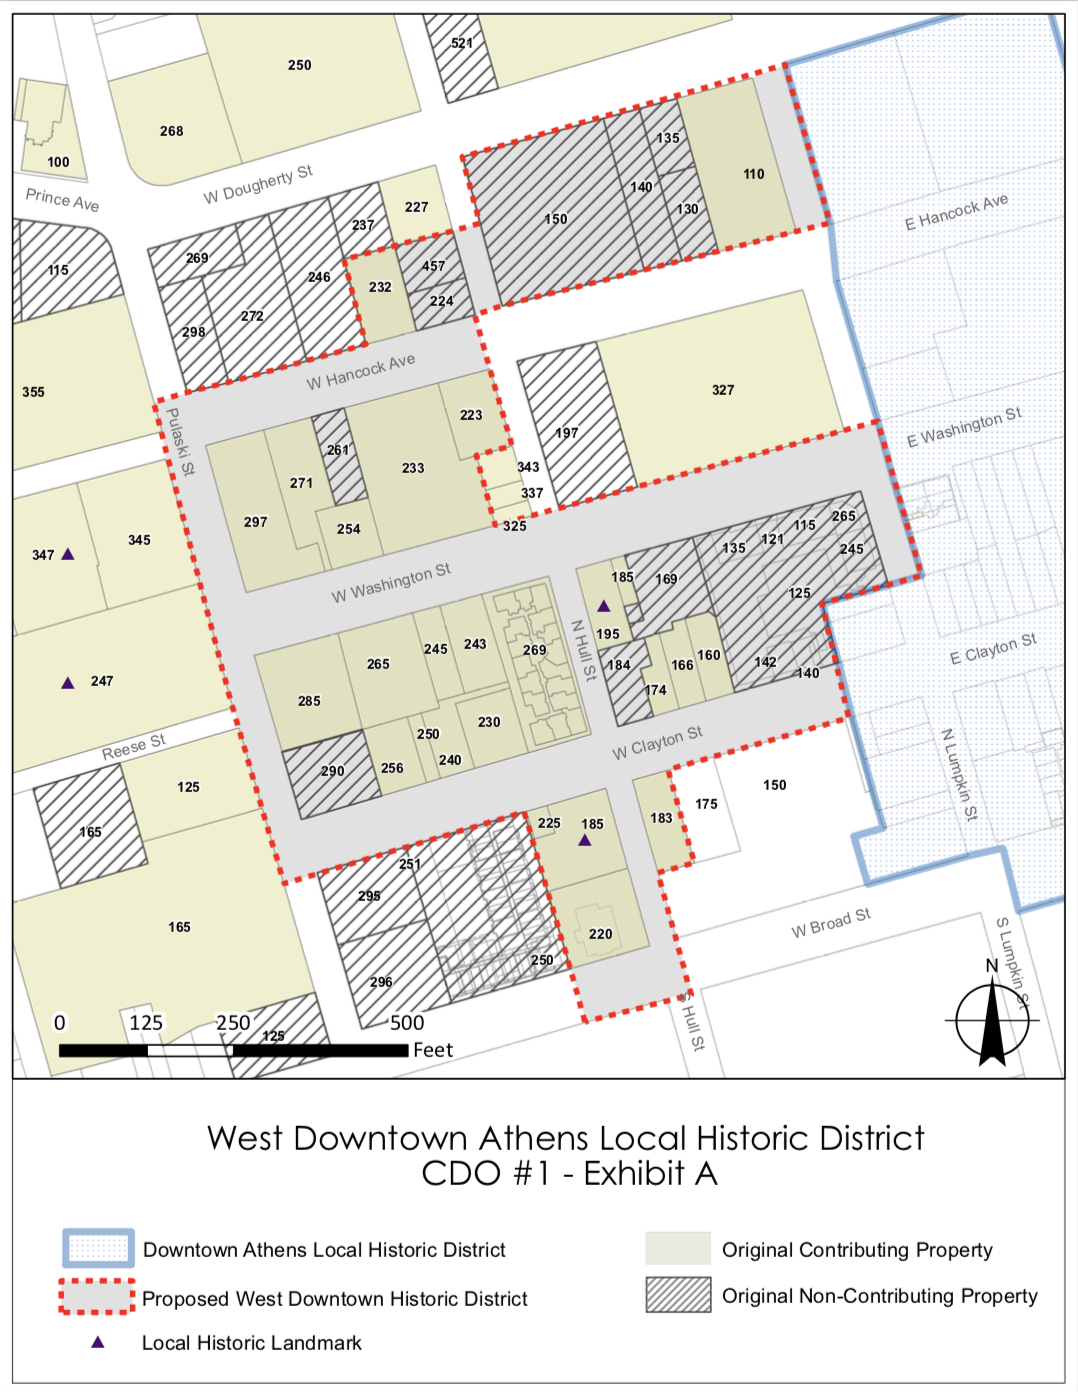 approved western historic district